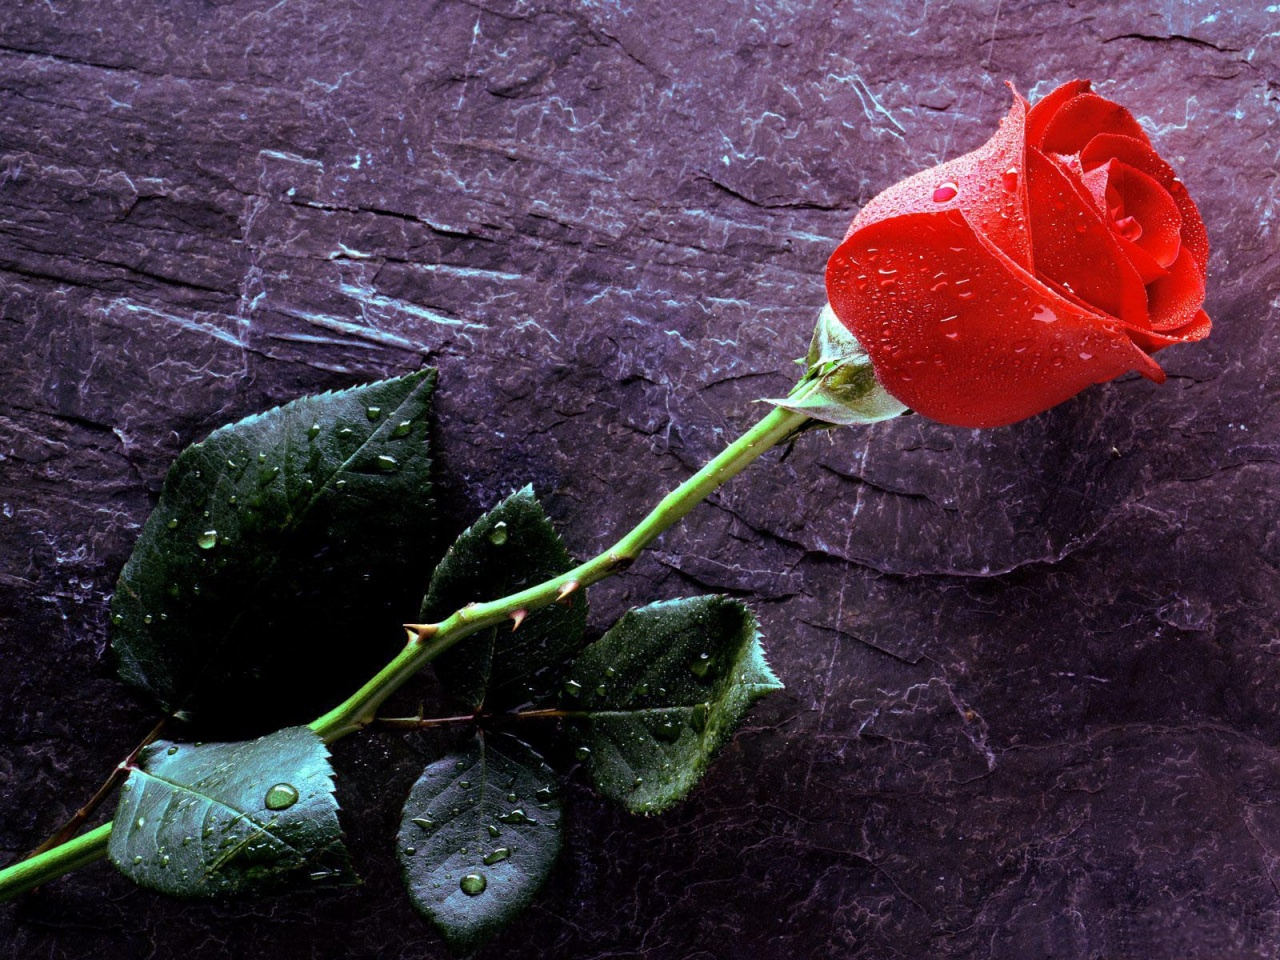 wao-amazing-look-red-roses-wallpapers-free-hd